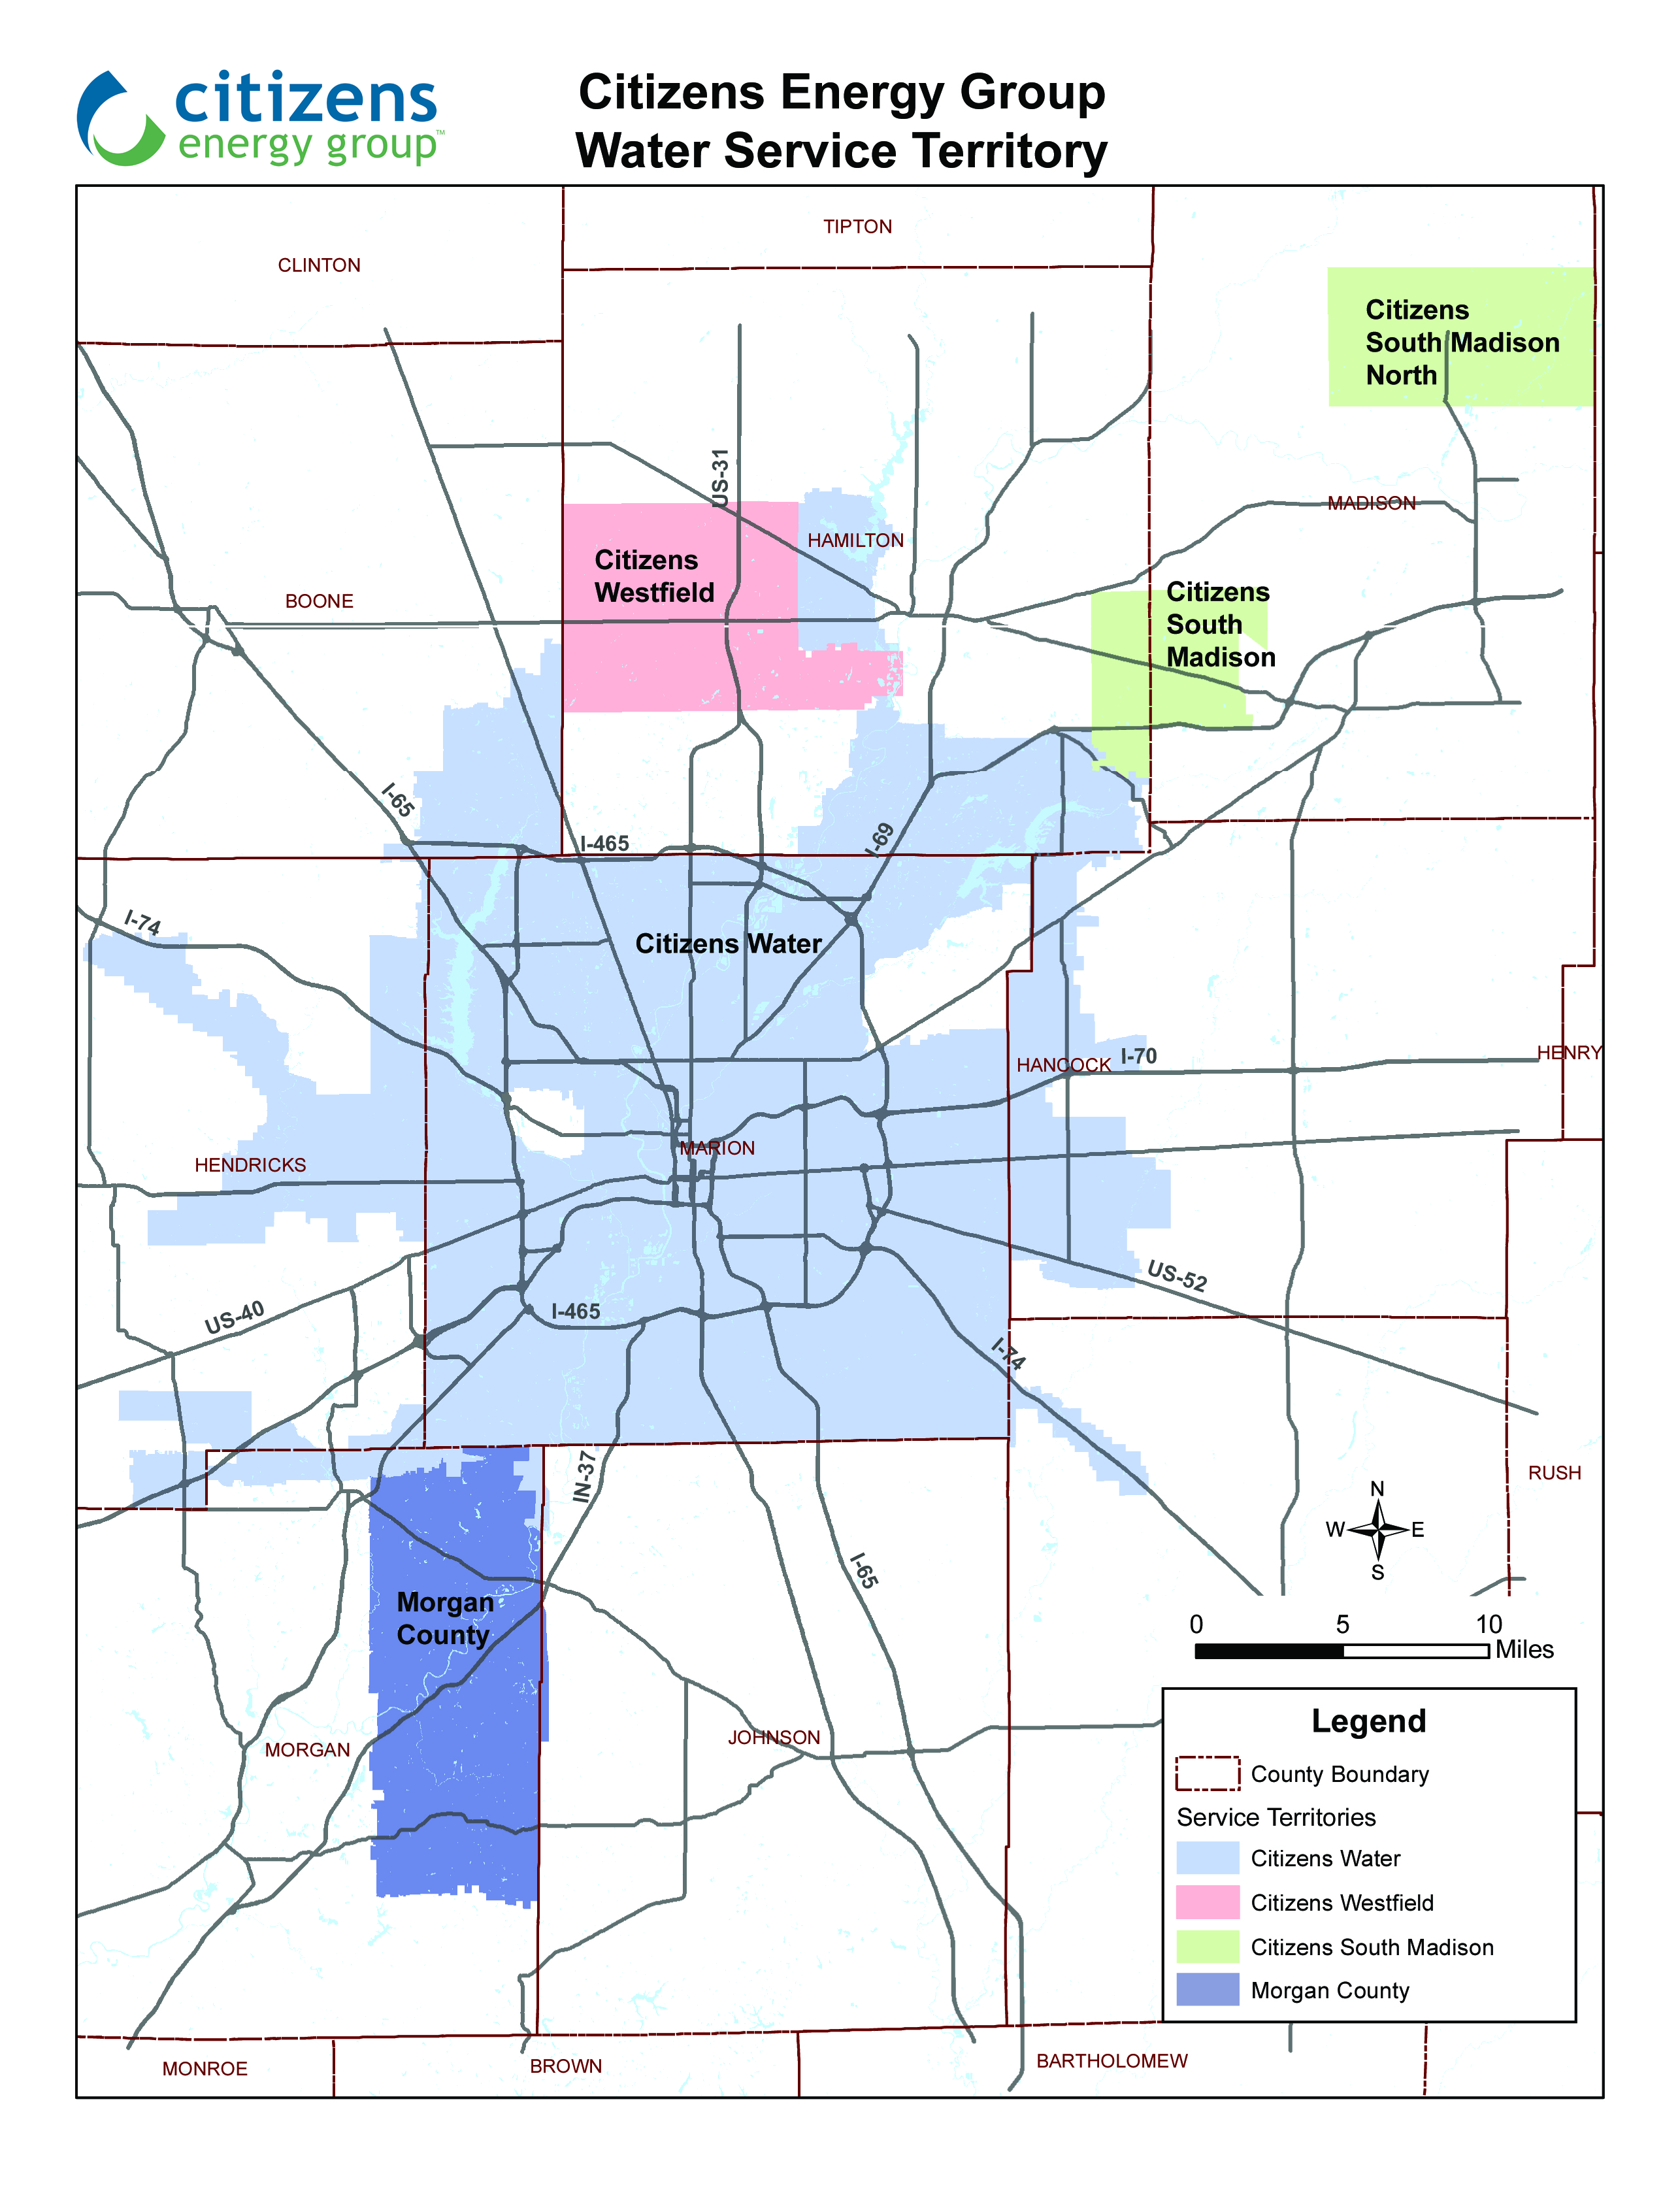 Water Service Territory Map Citizens Energy Group - Map of utility service territories us